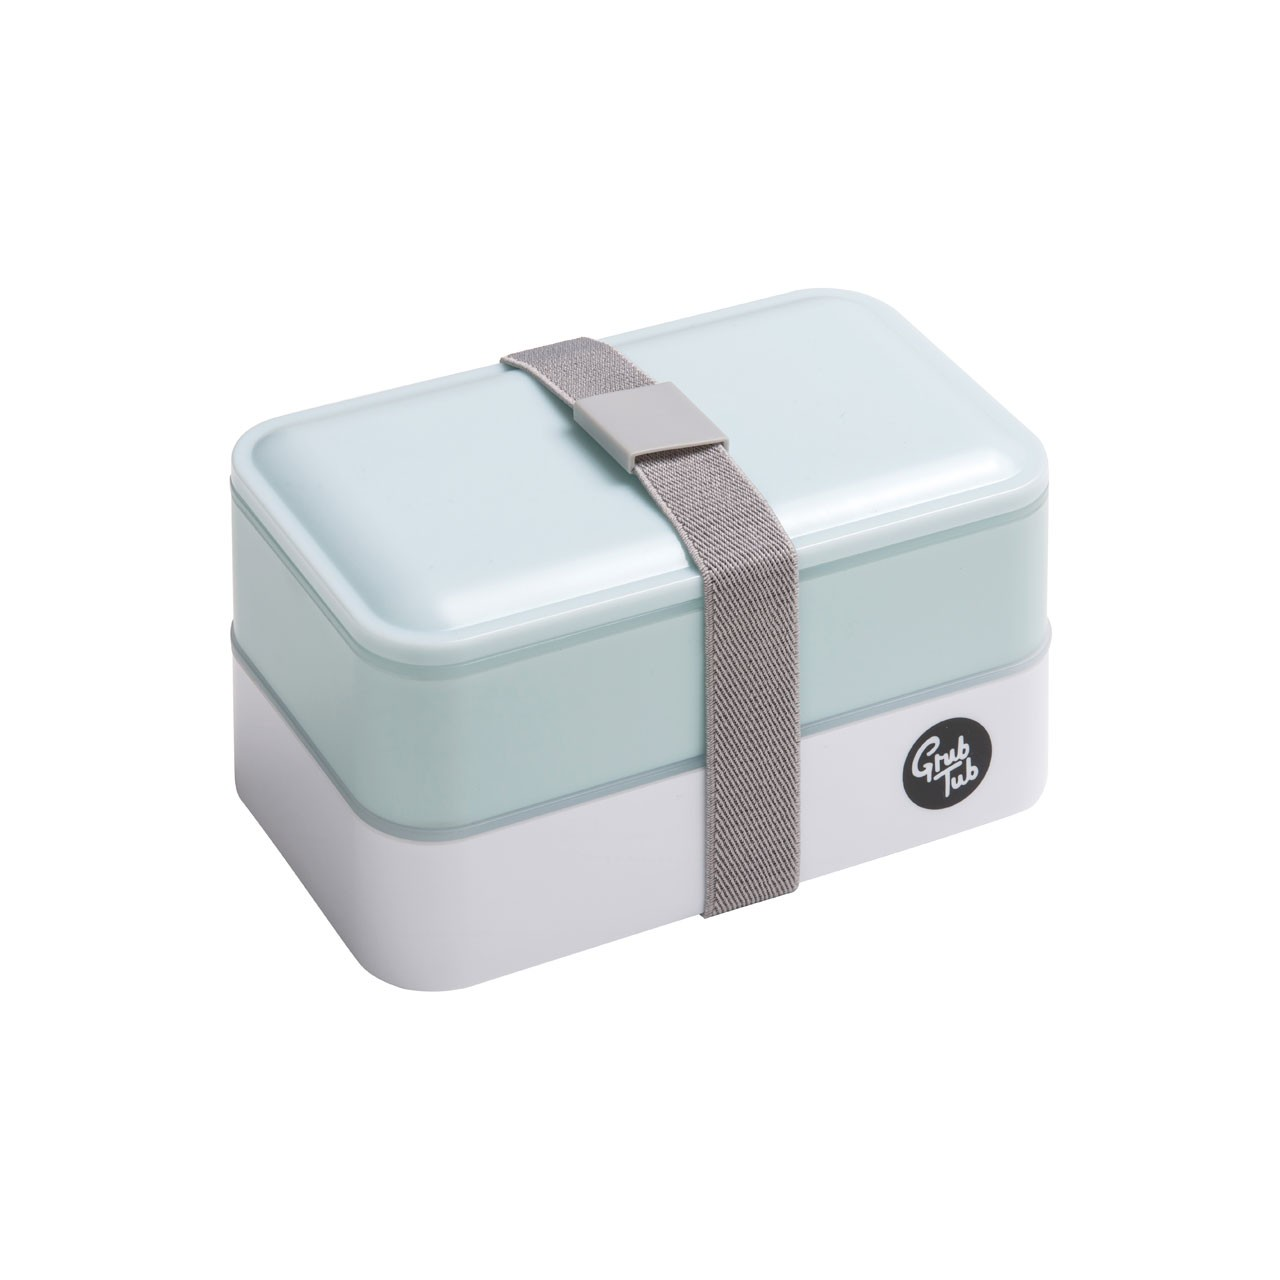 Grub Tub Lunch Box with 2 Containers and Cutlery - Mint/White